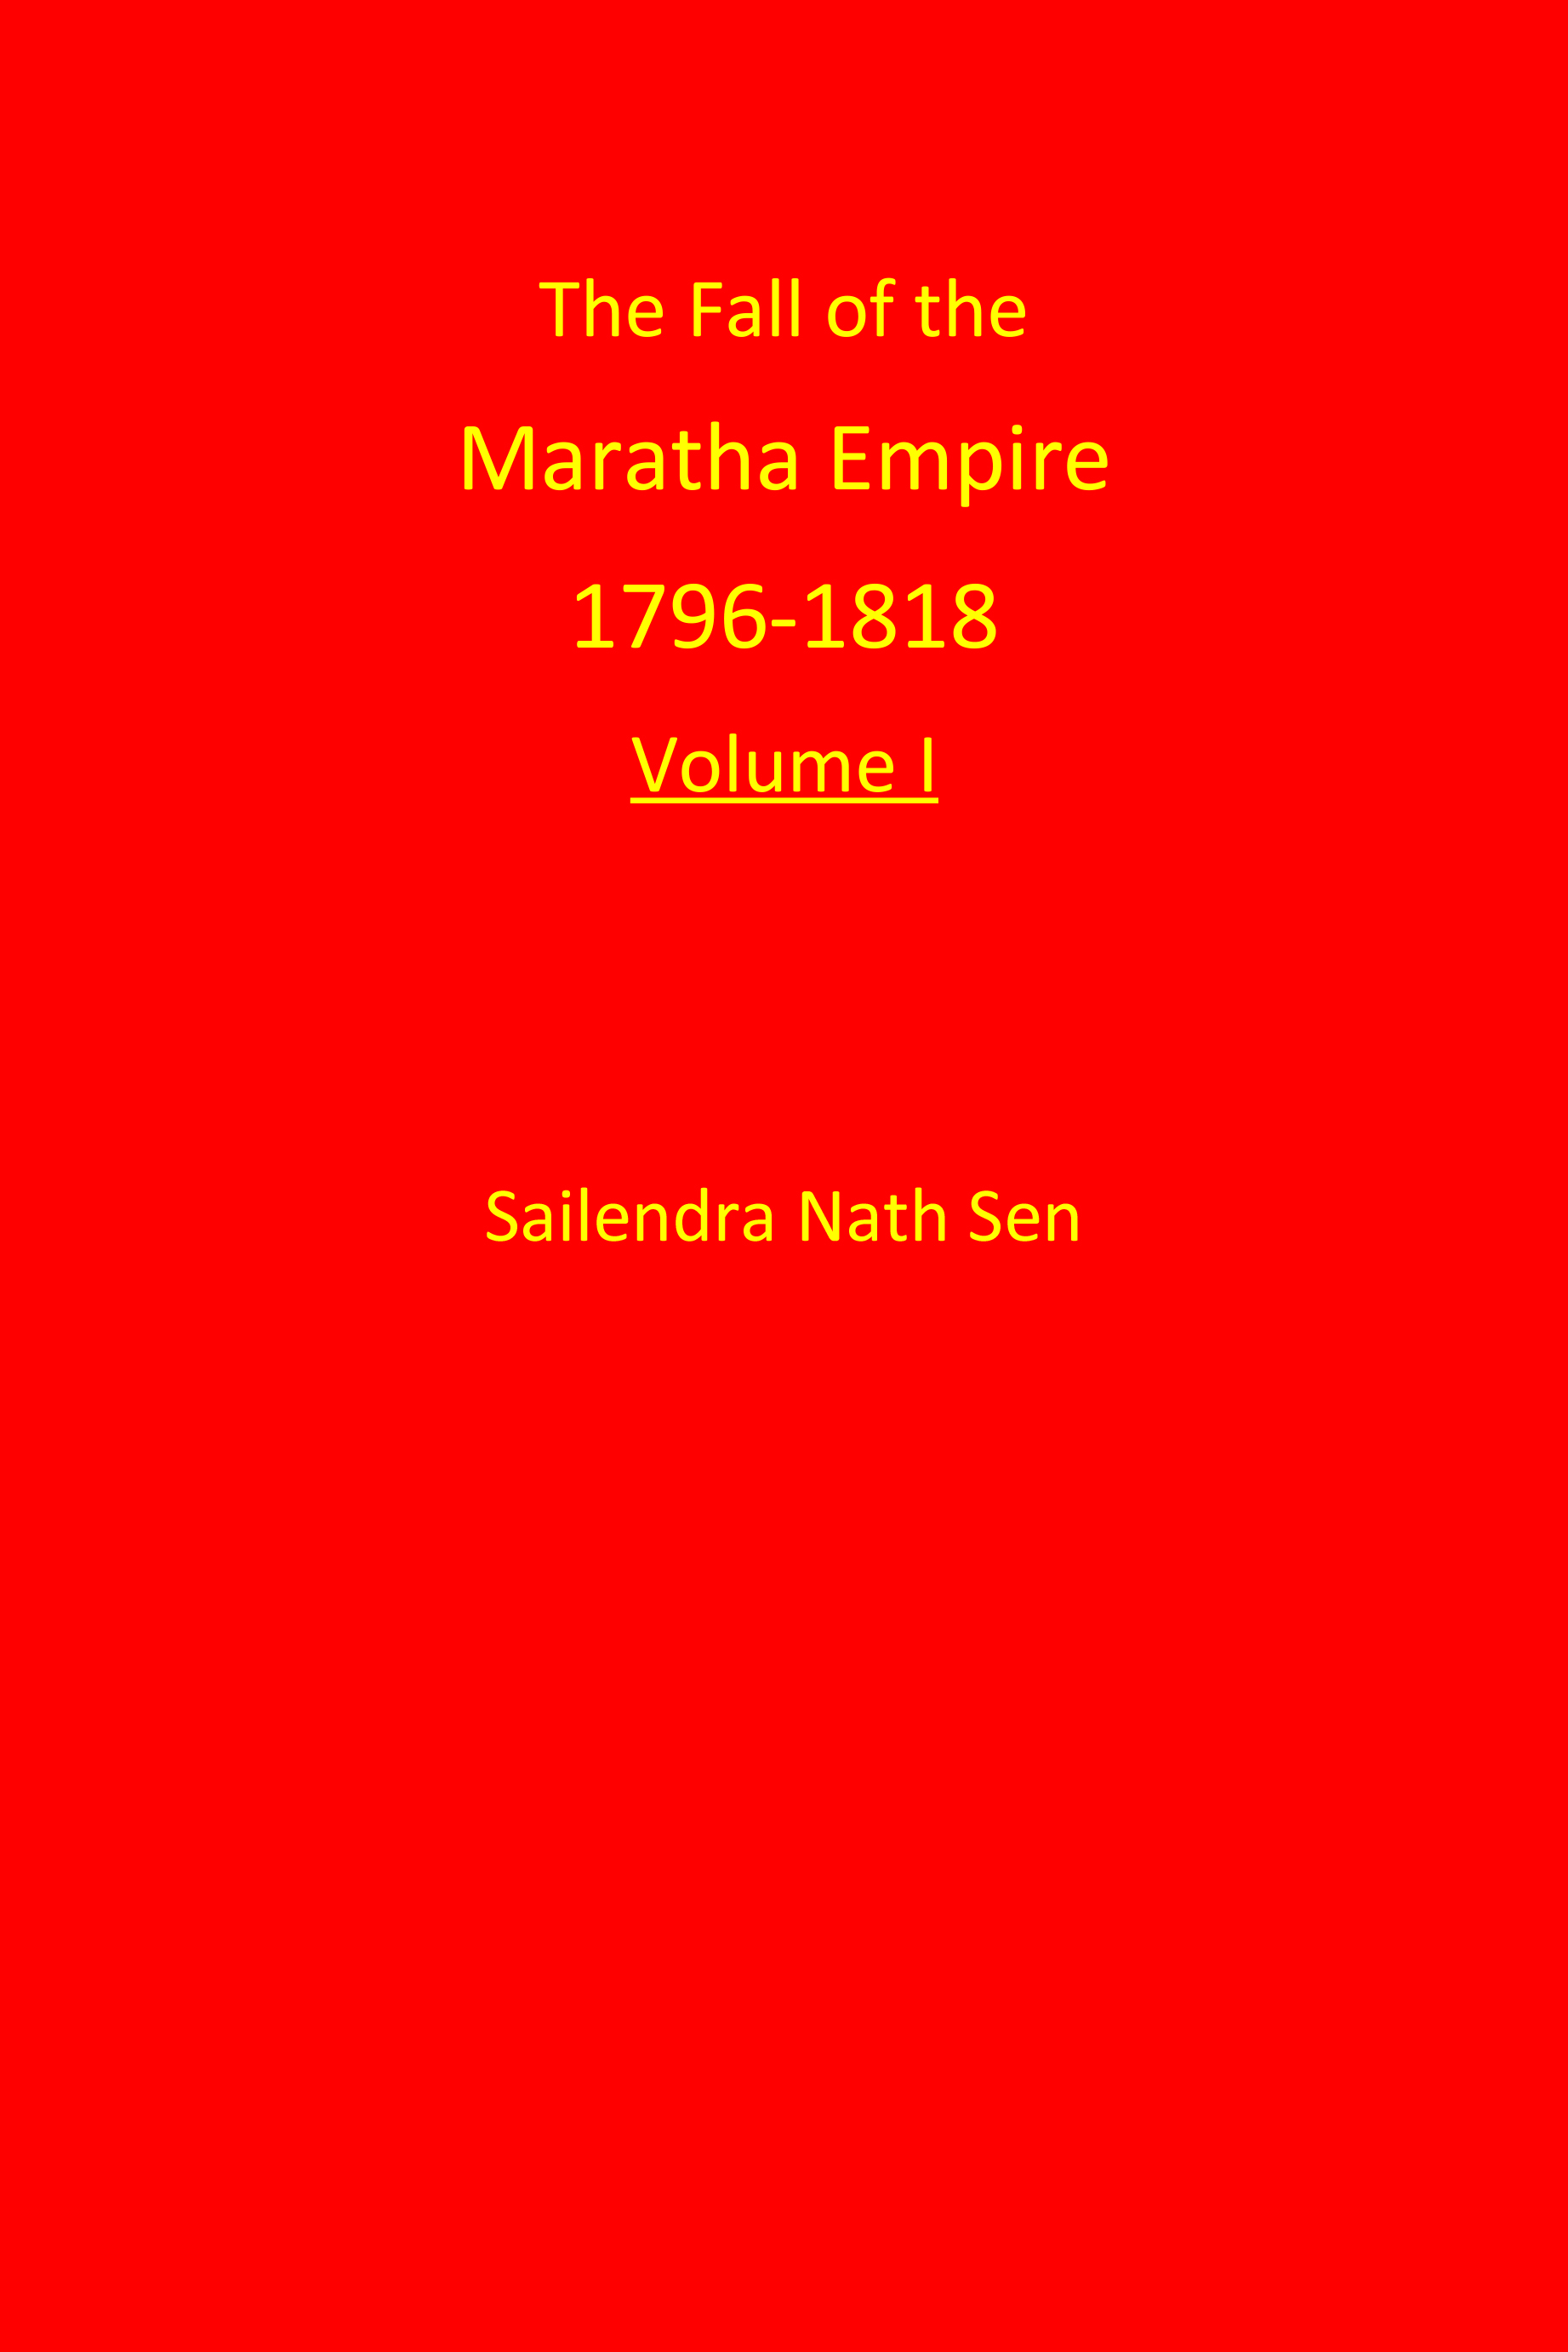 The Fall of the Maratha Empire 1796-1818